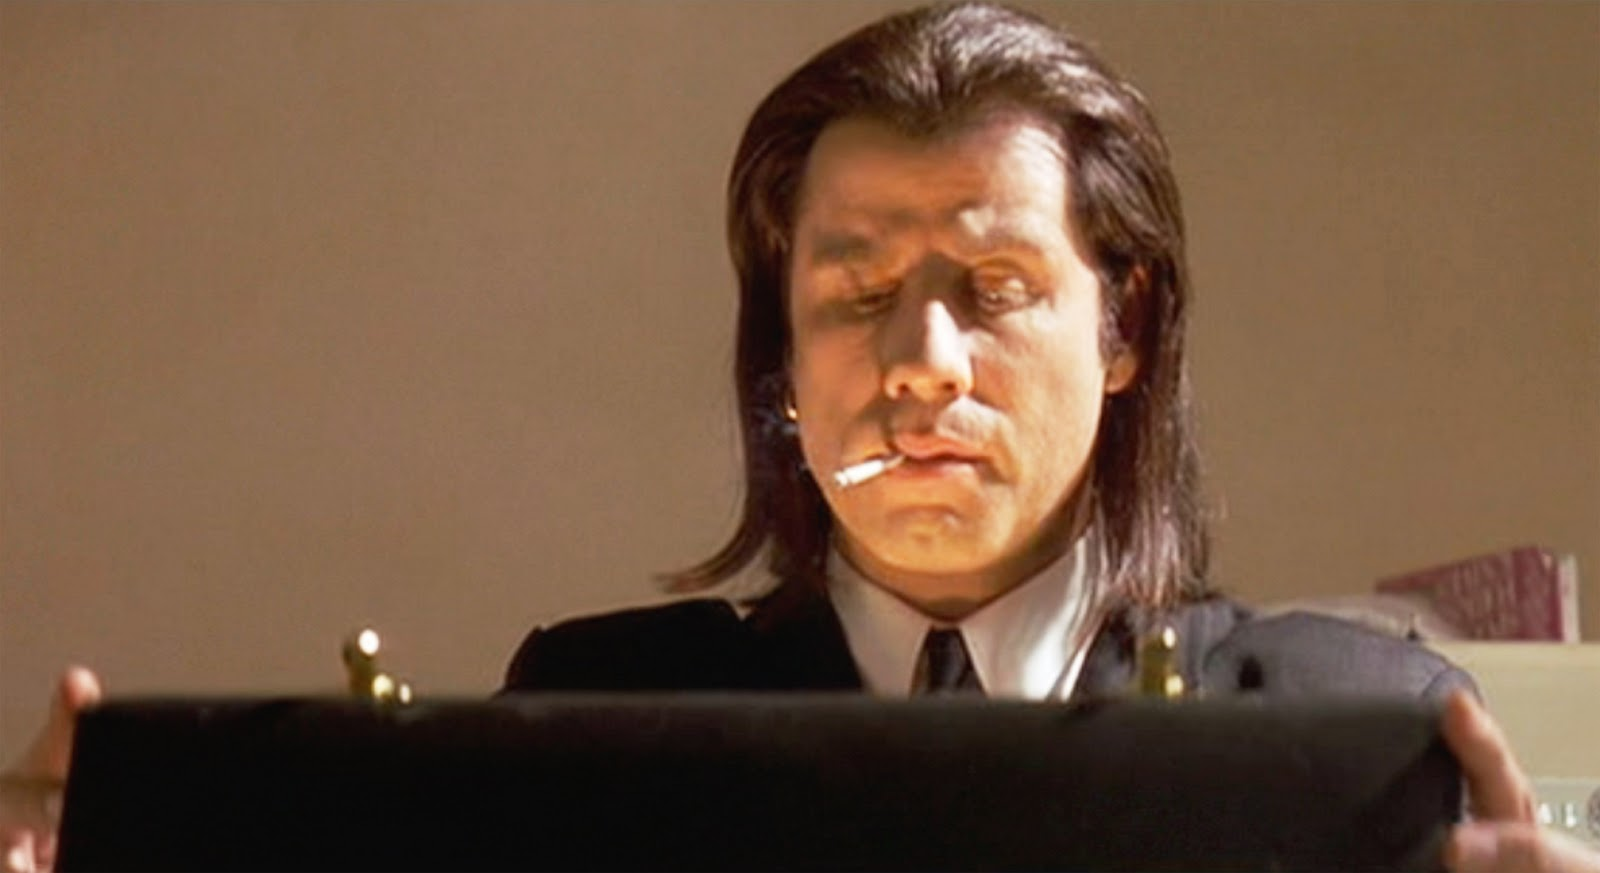 Vincent Vega just opened the suitcase - Pulp Fiction